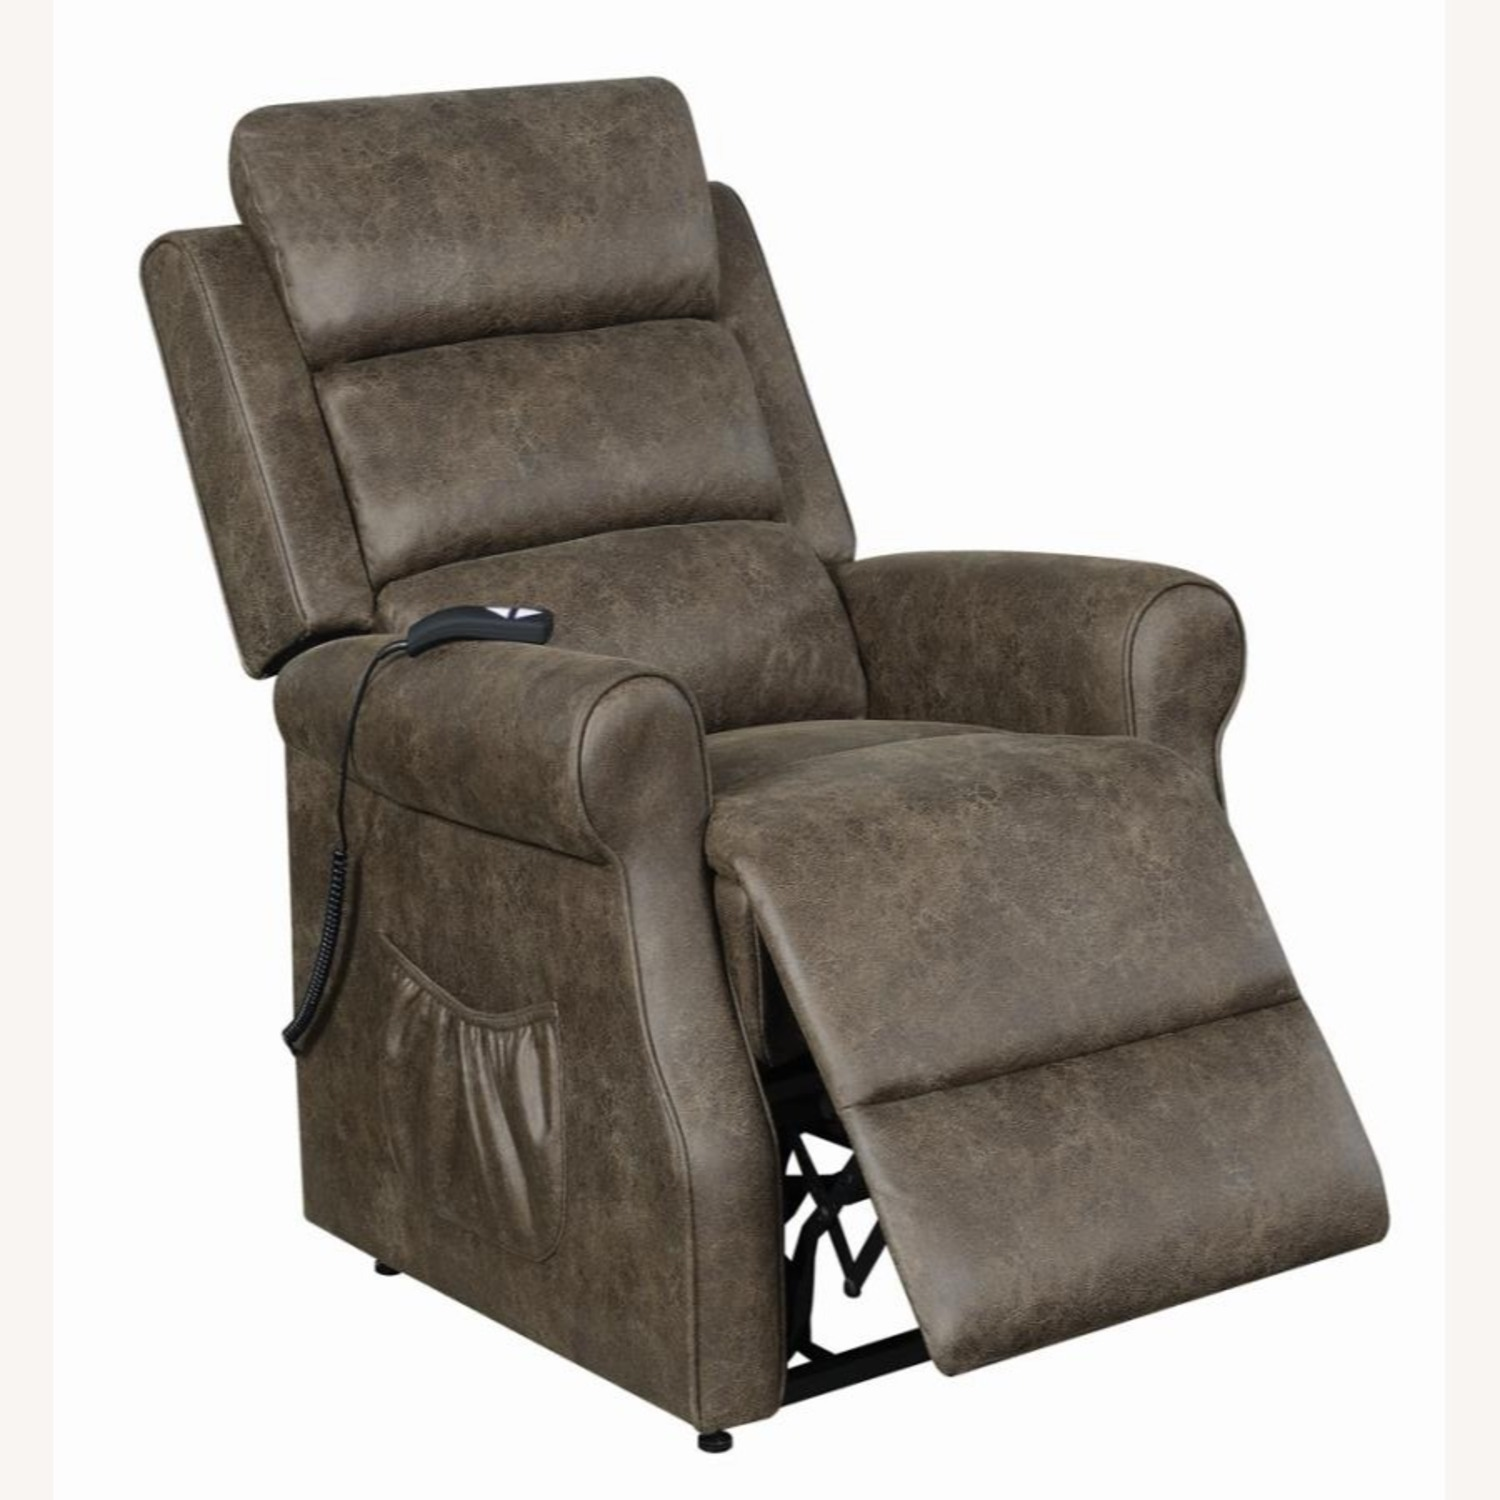 Power Lift Recliner In Brown Faux Suede Upholstery - image-2